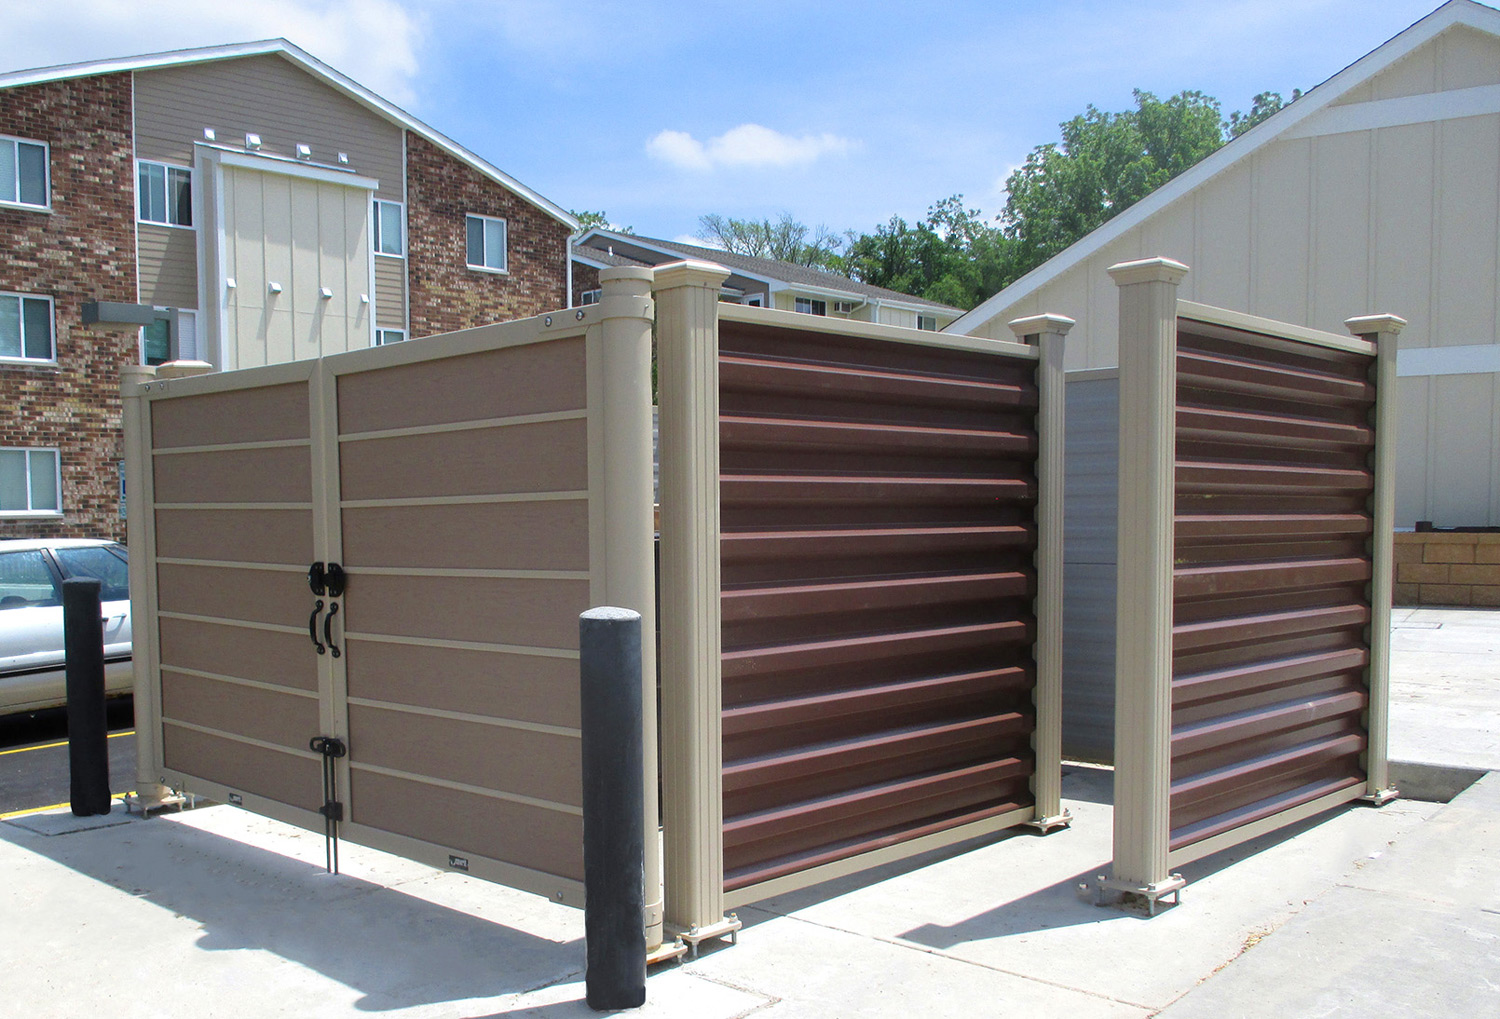 Dumpster Enclosures Installation